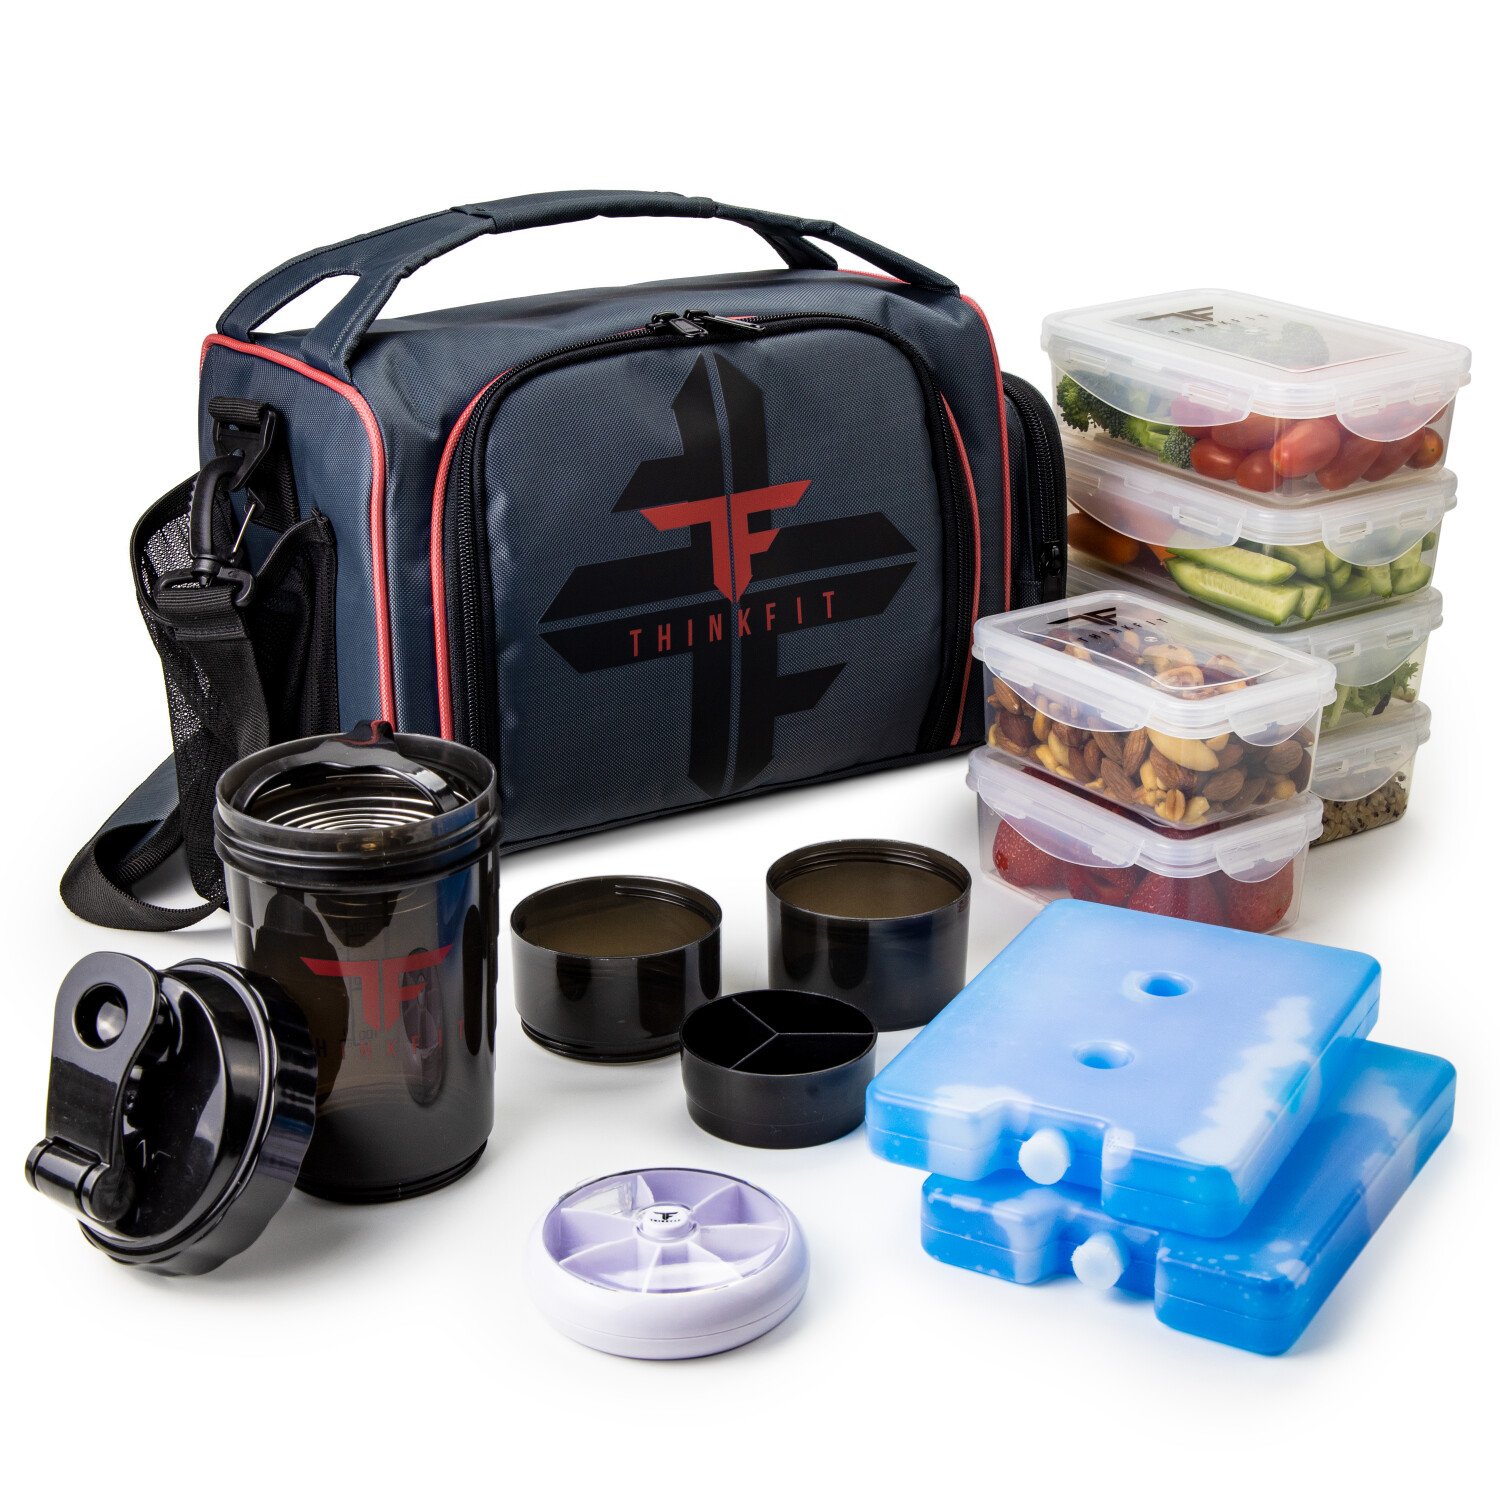 ThinkFit Insulated Meal Prep Lunch Box - 6 Portion Control Containers - BPA-Free, Microwave, Dishwasher, and Freezer Safe - Red